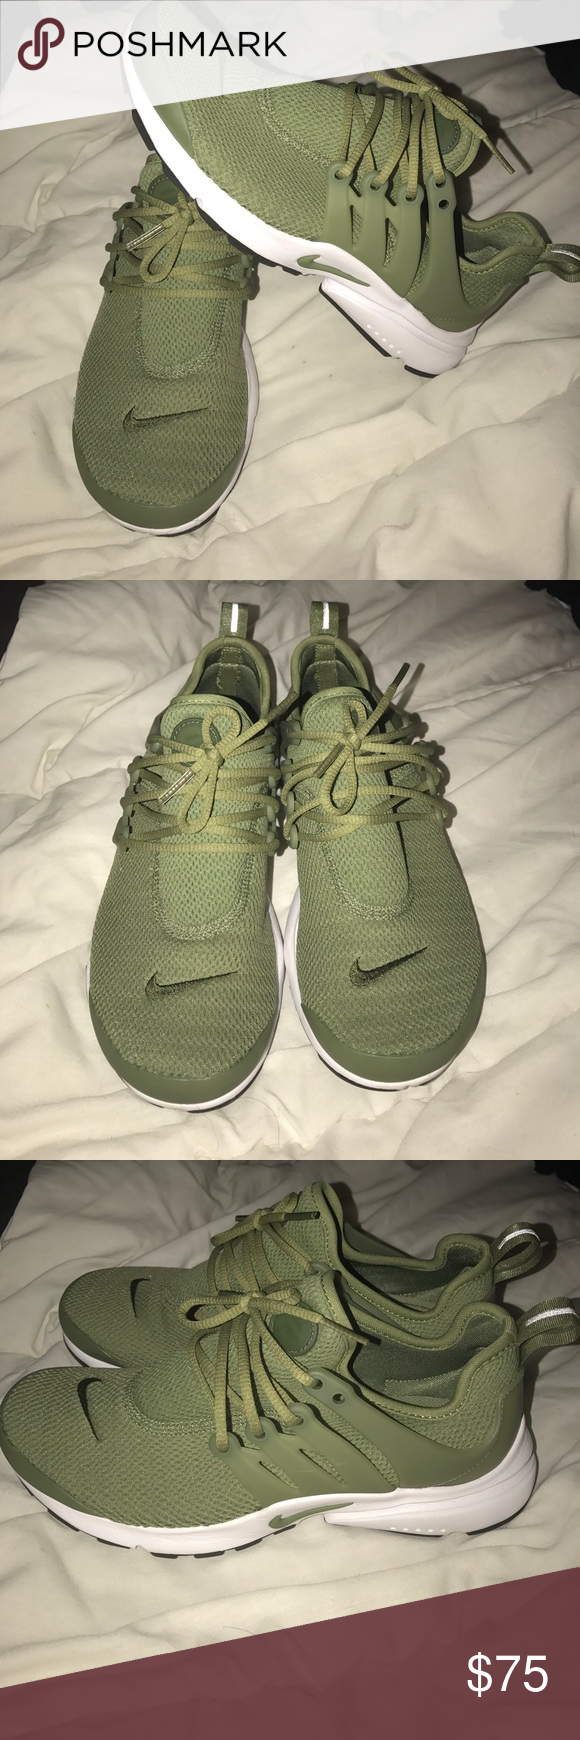 new style 6cc8d 0d7e6 Women's Nike Air presto Beautiful olive green air prestos ...